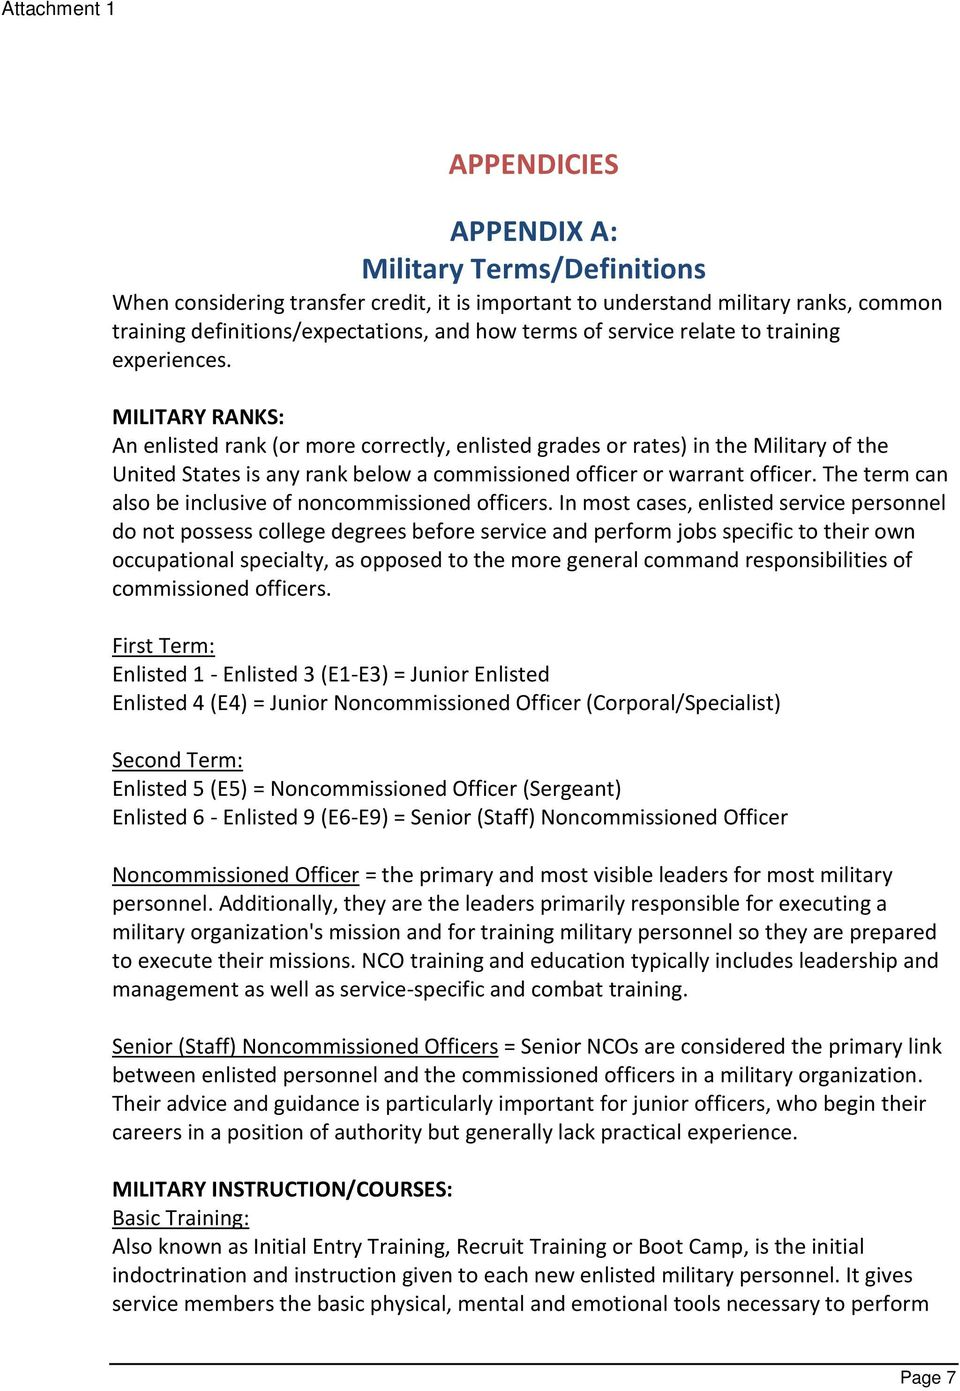 MILITARY RANKS: An enlisted rank (or more correctly, enlisted grades or rates) in the Military of the United States is any rank below a commissioned officer or warrant officer.